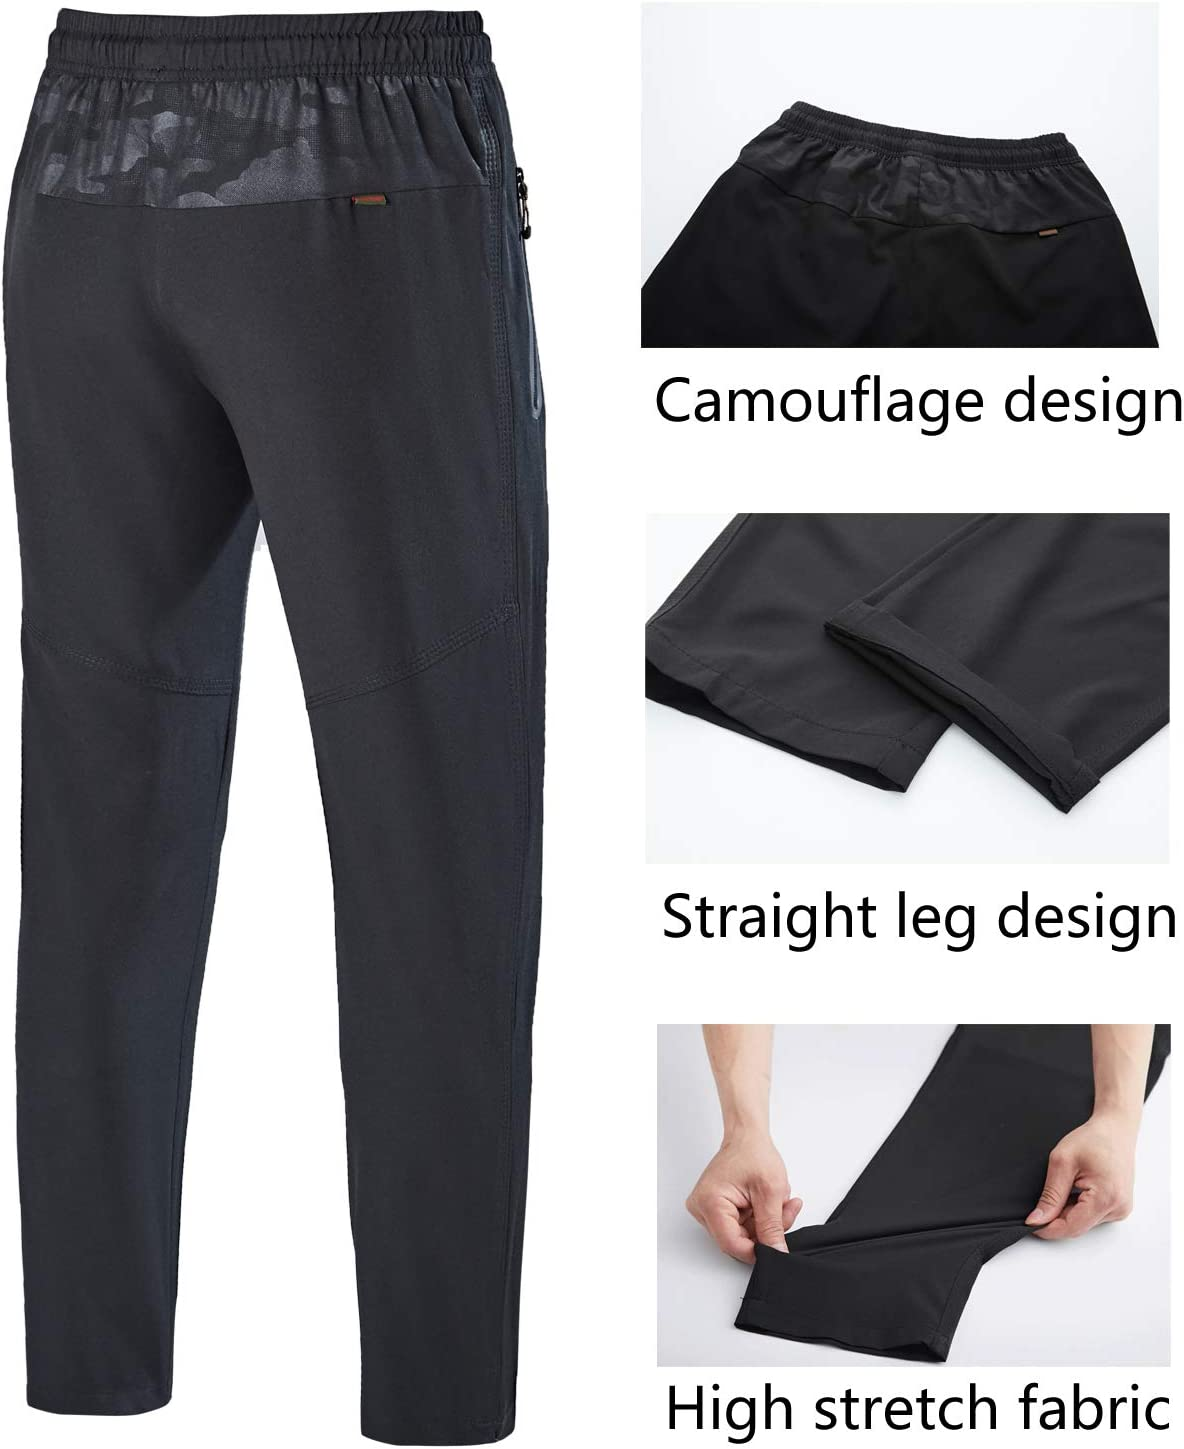 donhobo Mens Hiking Trousers Lightweight Breathable Leisure Trousers Trekking Trousers Running Trousers Sports Trousers Outdoor Quick-Drying Camping Trousers